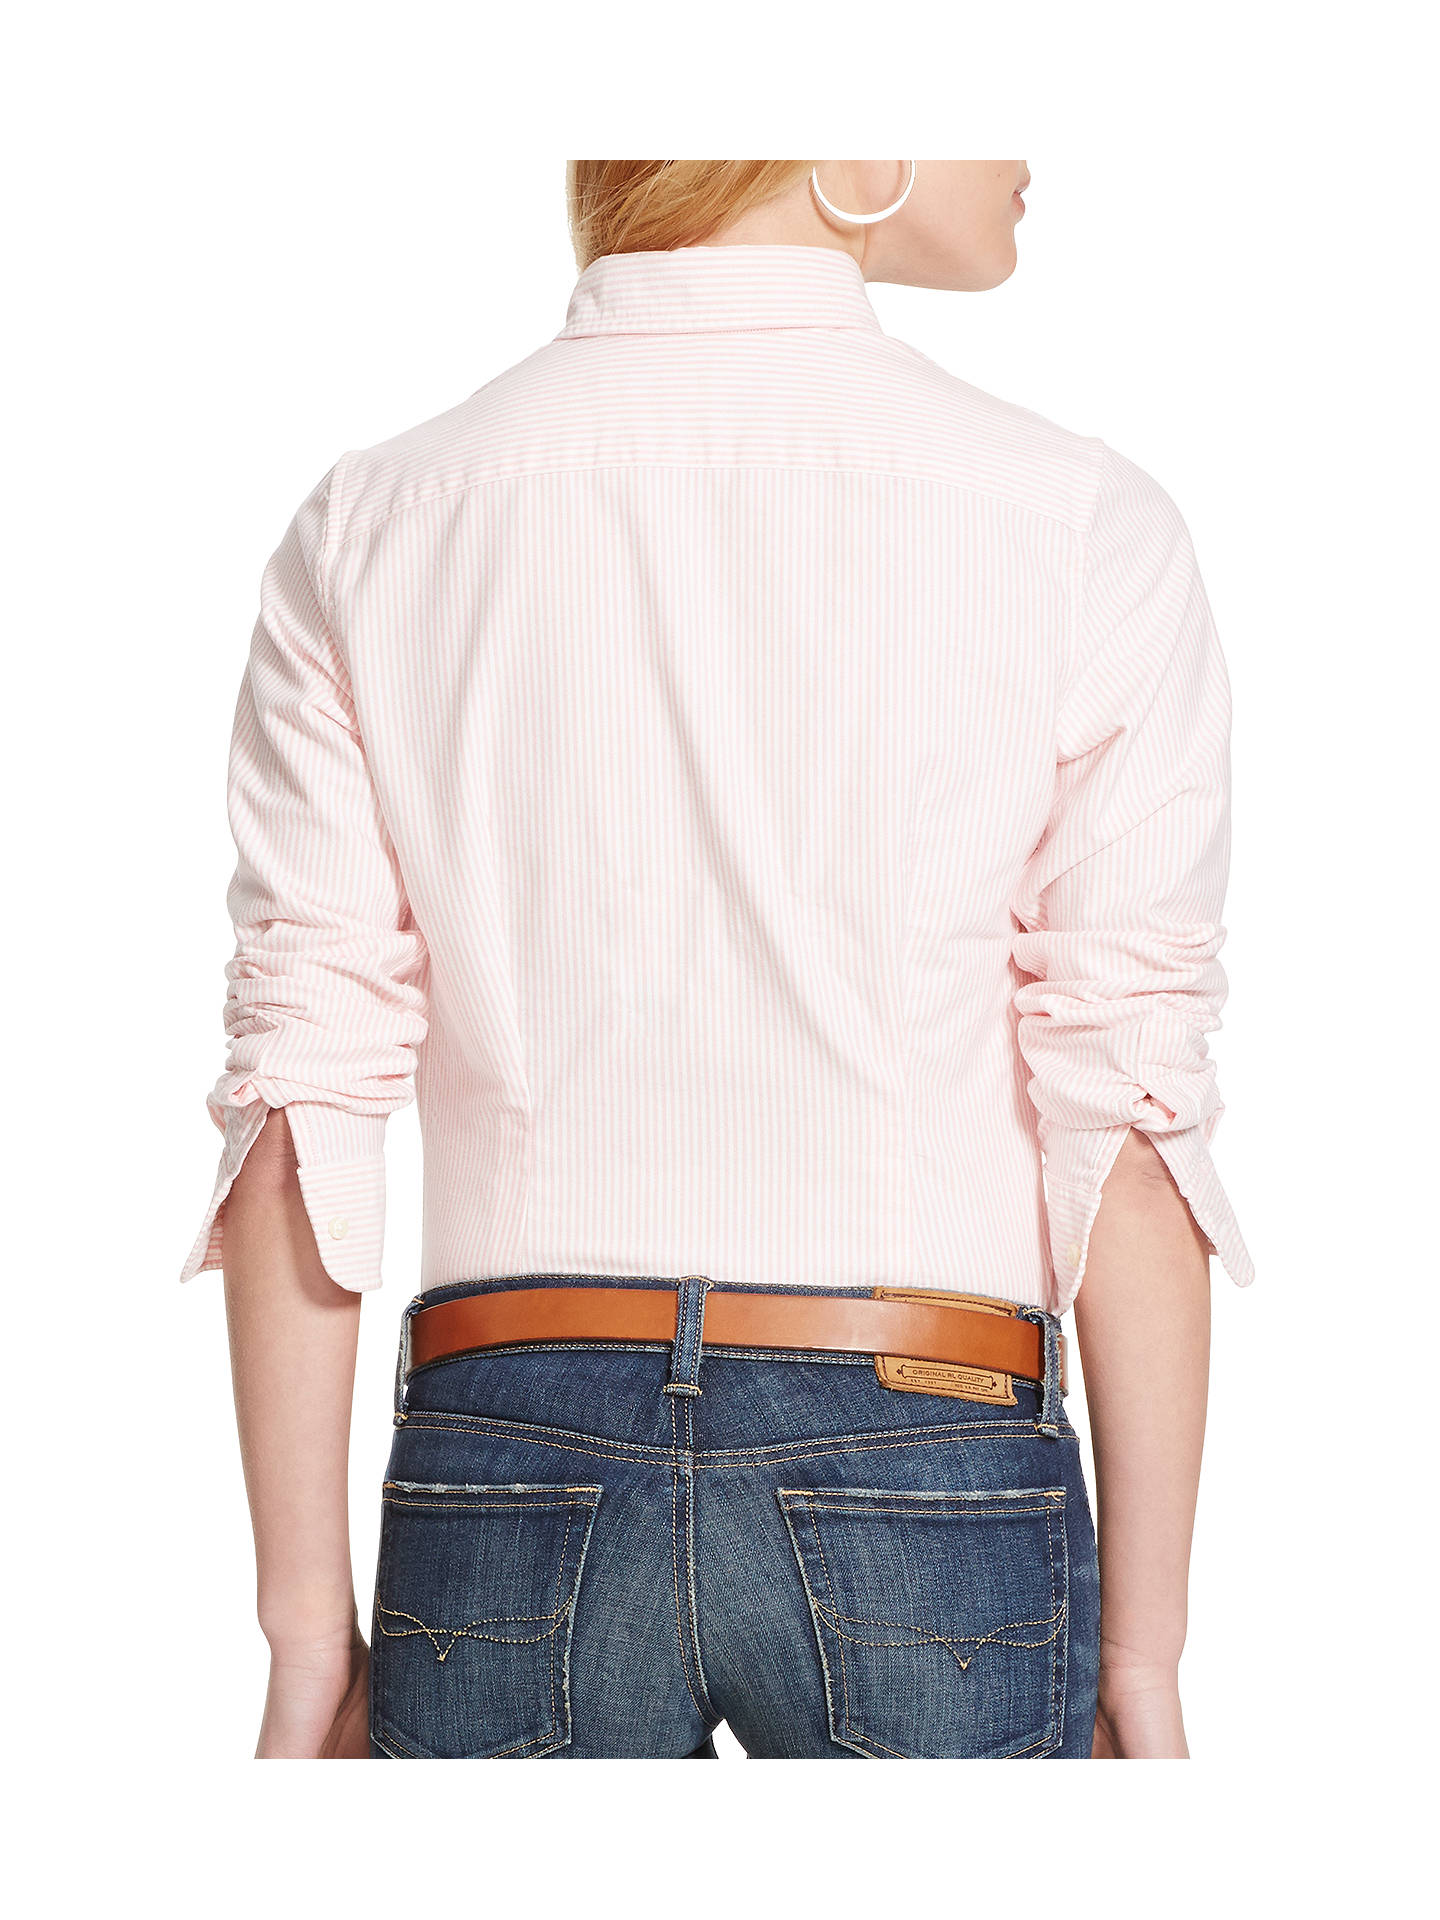 BuyPolo Ralph Lauren Harper Stripe Fitted Shirt, Pink/White, XS Online at johnlewis.com